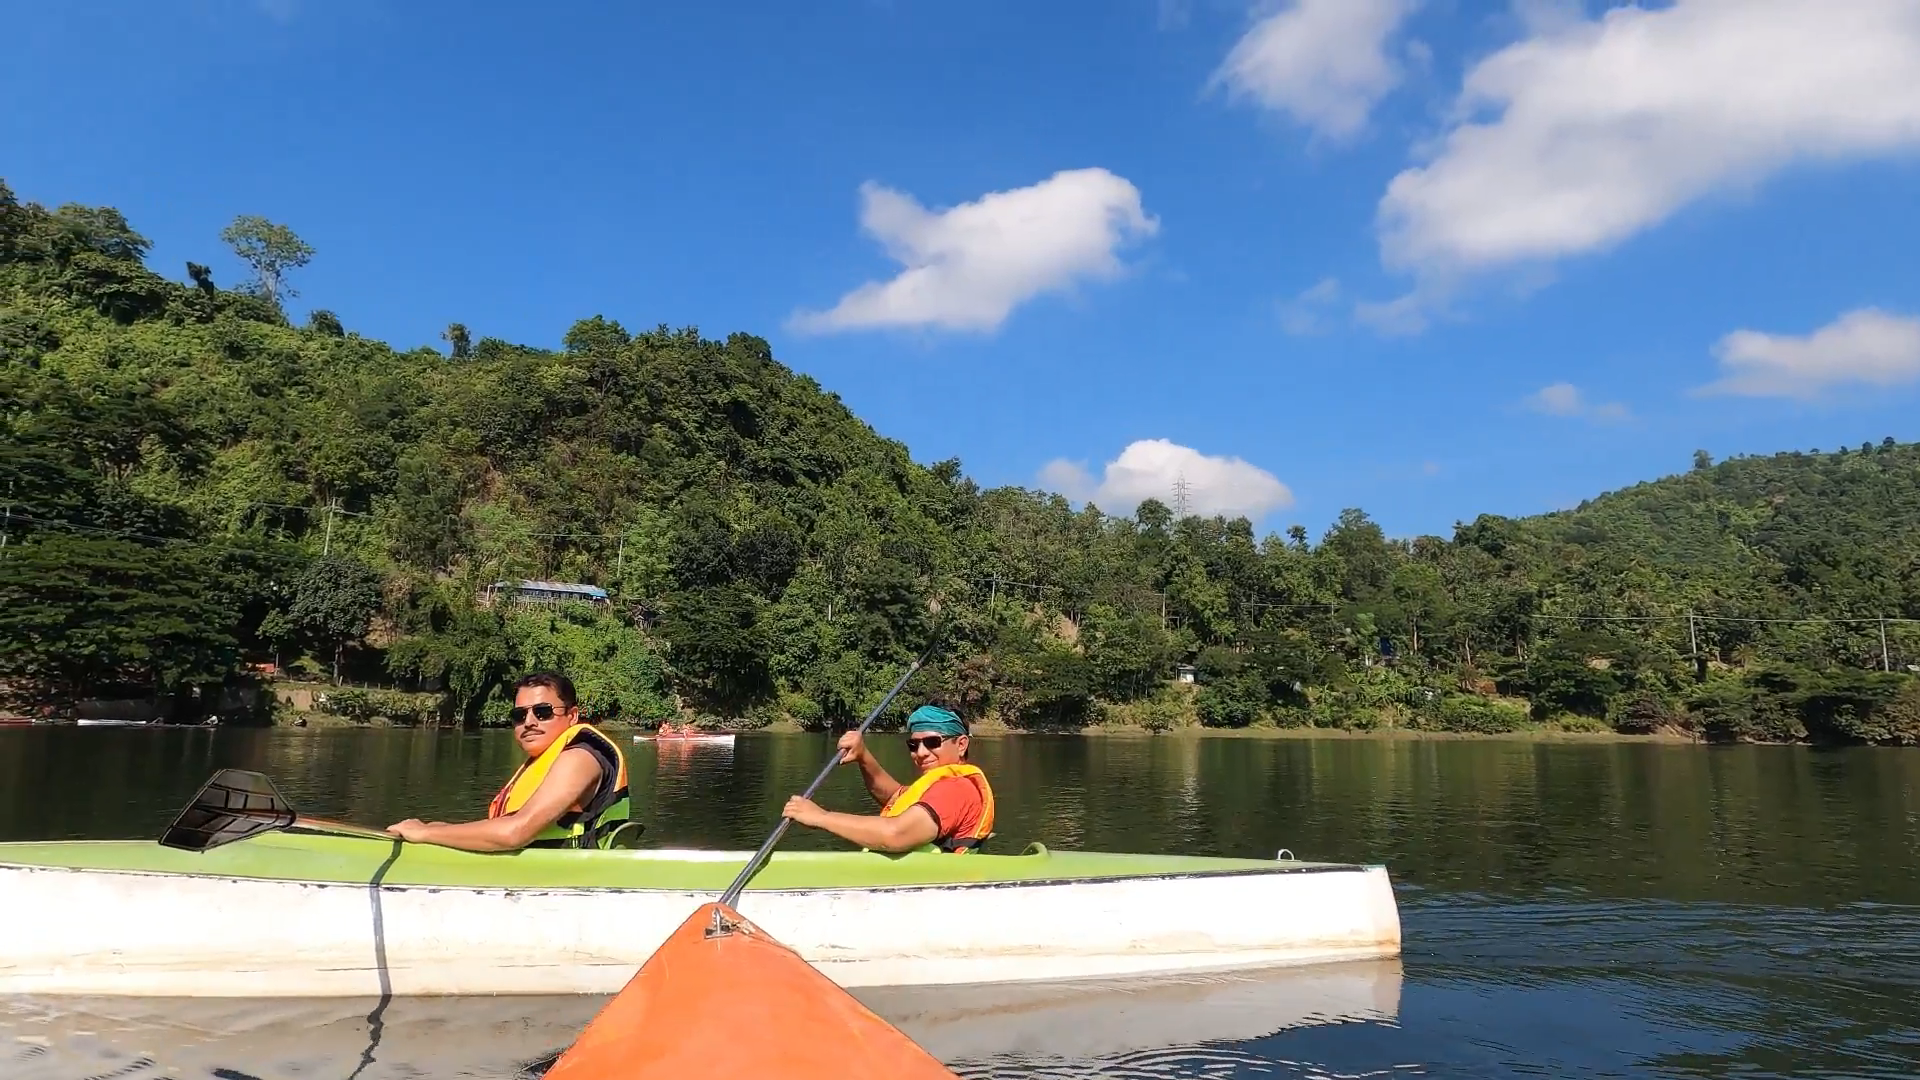 Chattogram Rangamati Bike Tour Via Kaptai With Gopro Hero 8 Black: Kayaking Session| Panaroma Zoom